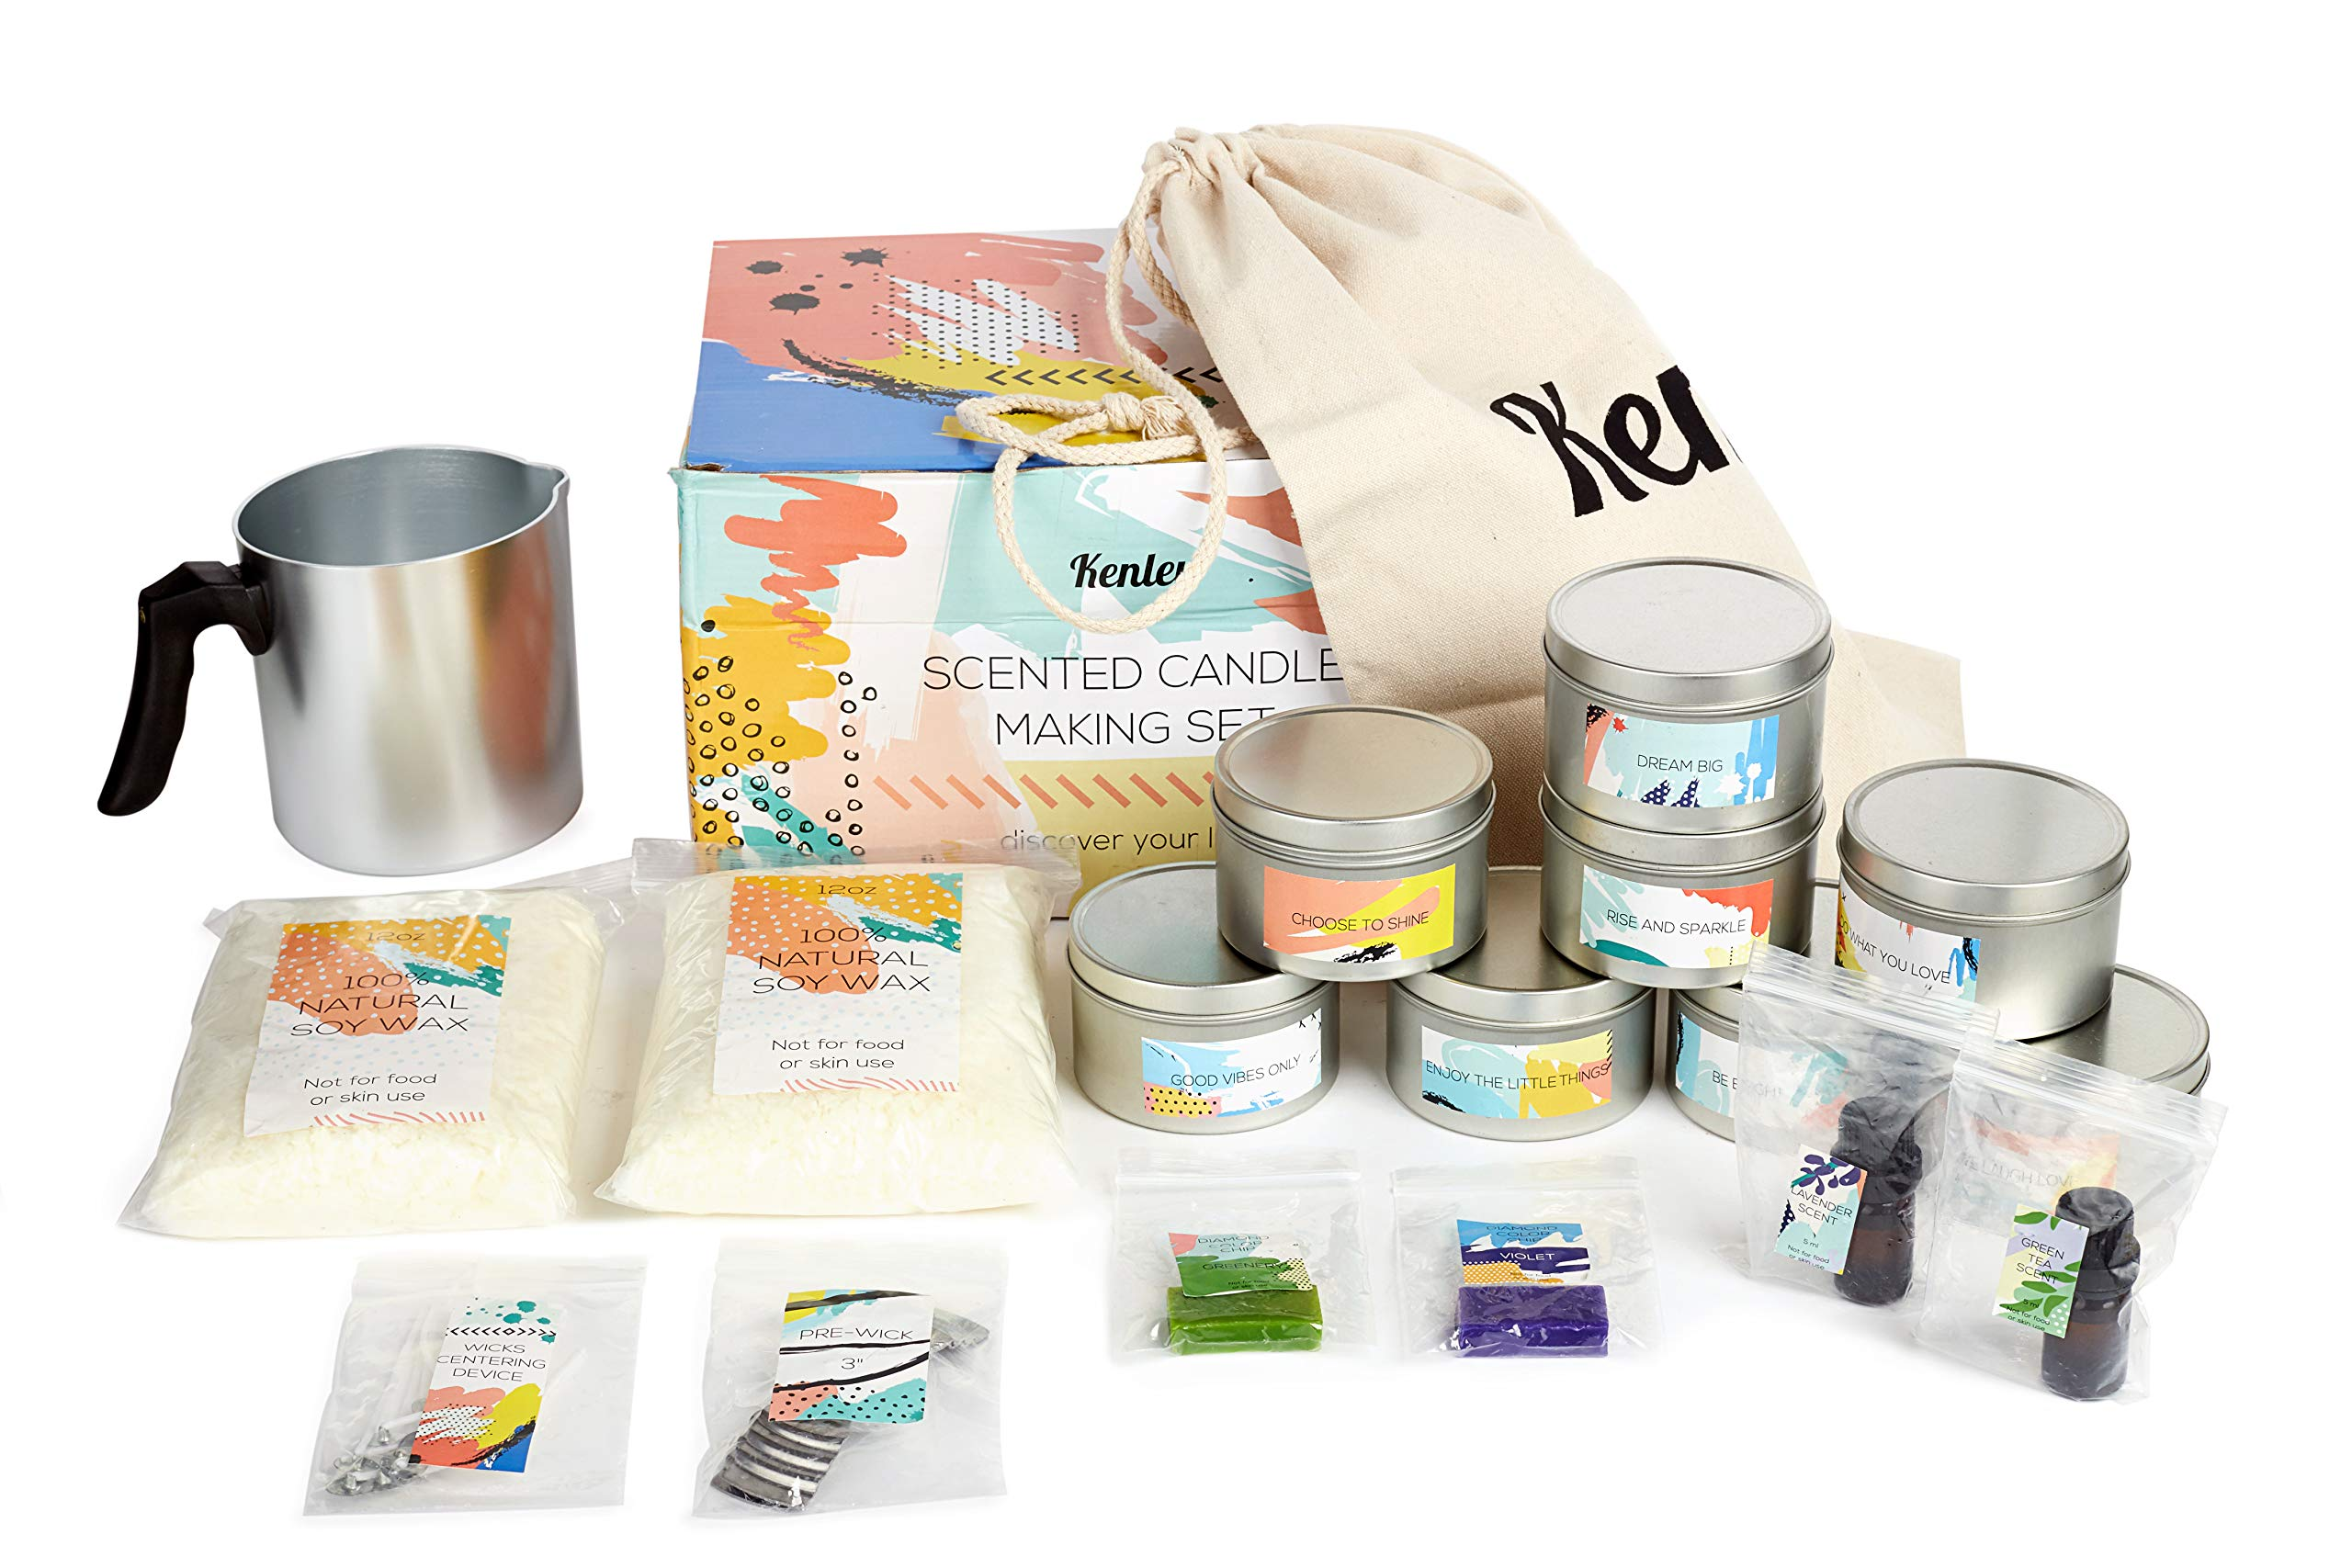 Candle Making Kit - Gift Set for Kids & Adults with Candle Making Supplies - Natural Soy Wax, Green Tea & Lavender Scents, Color Dye, Melting Pot, Wicks - Make Your Own Scented Candles DIY Craft Kits